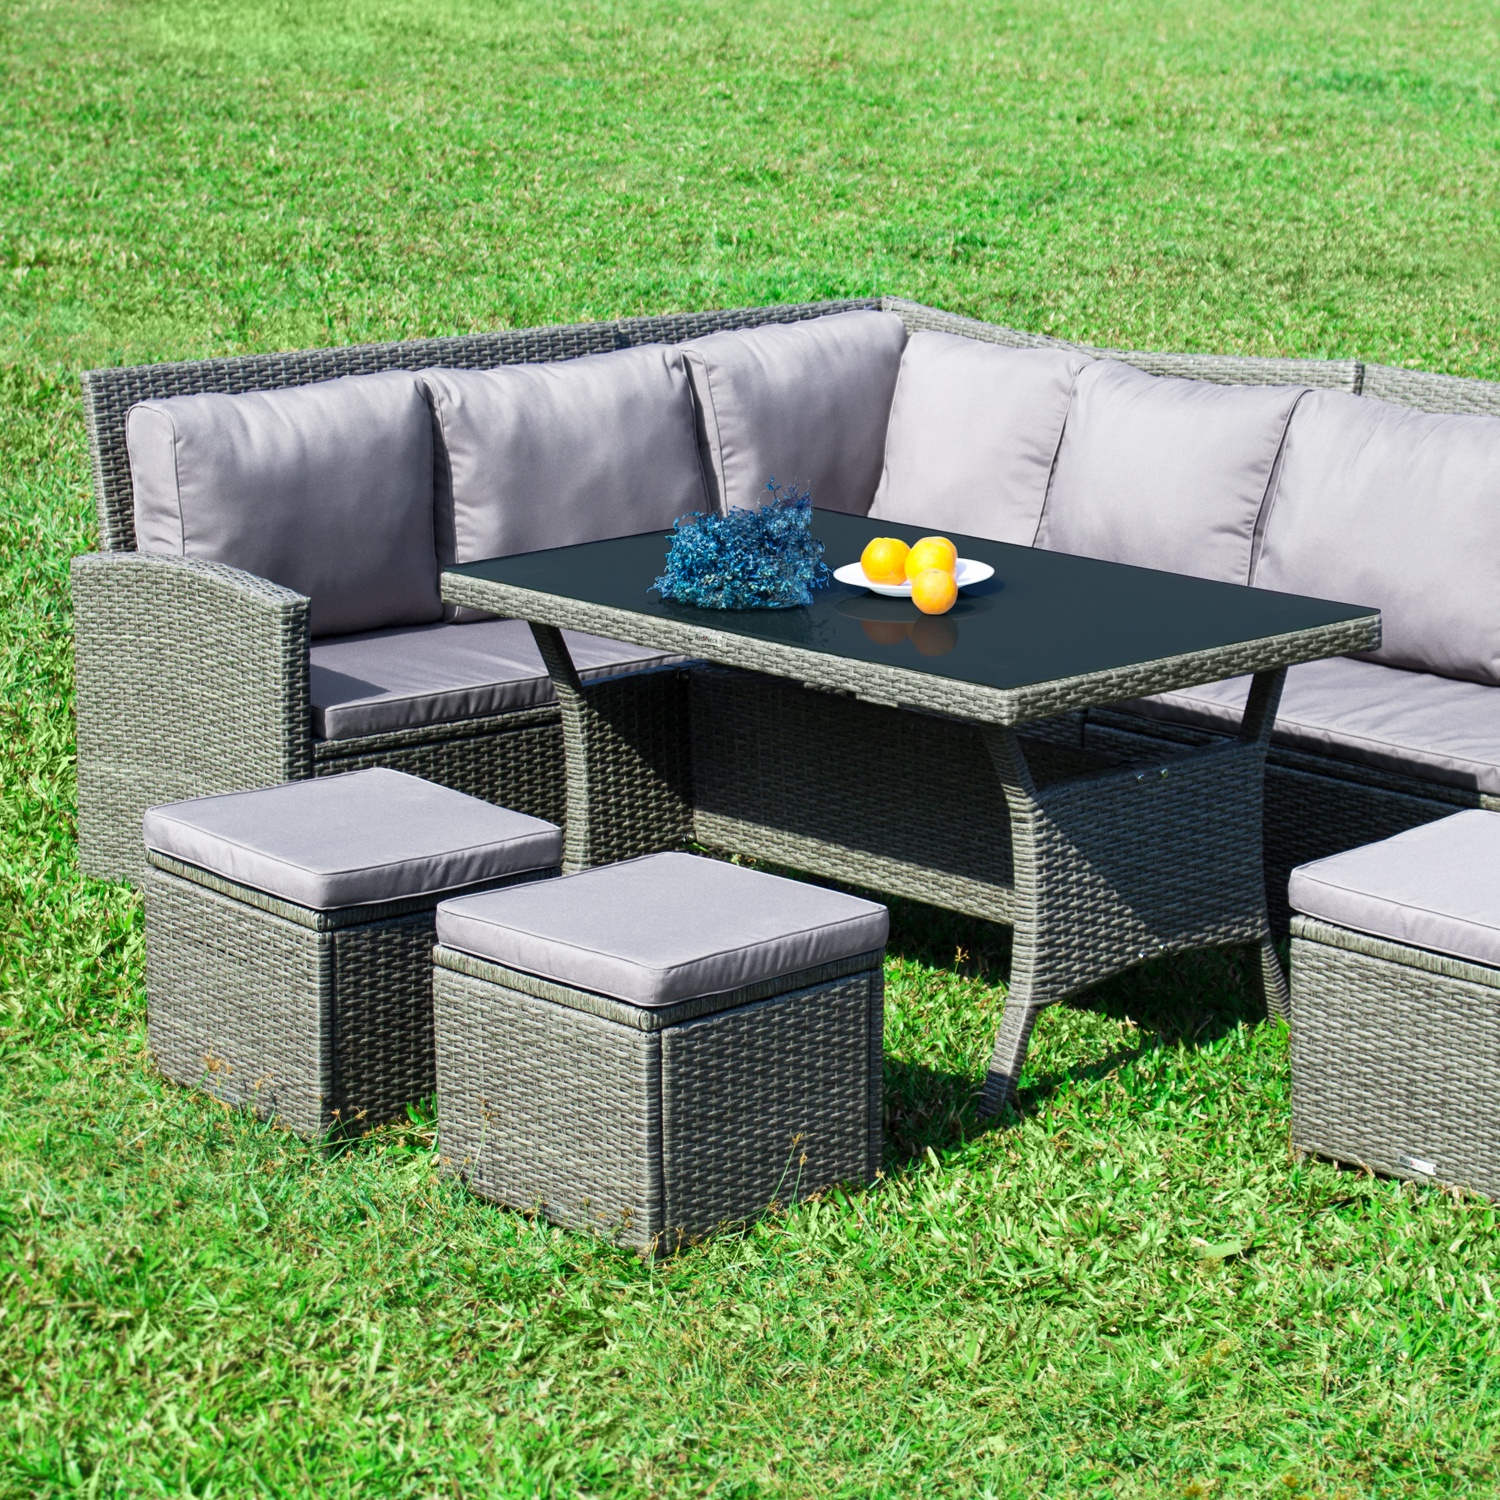 gartenm bel set 8er ecklounge redneck comfort grau polyrattan aluminium ebay. Black Bedroom Furniture Sets. Home Design Ideas